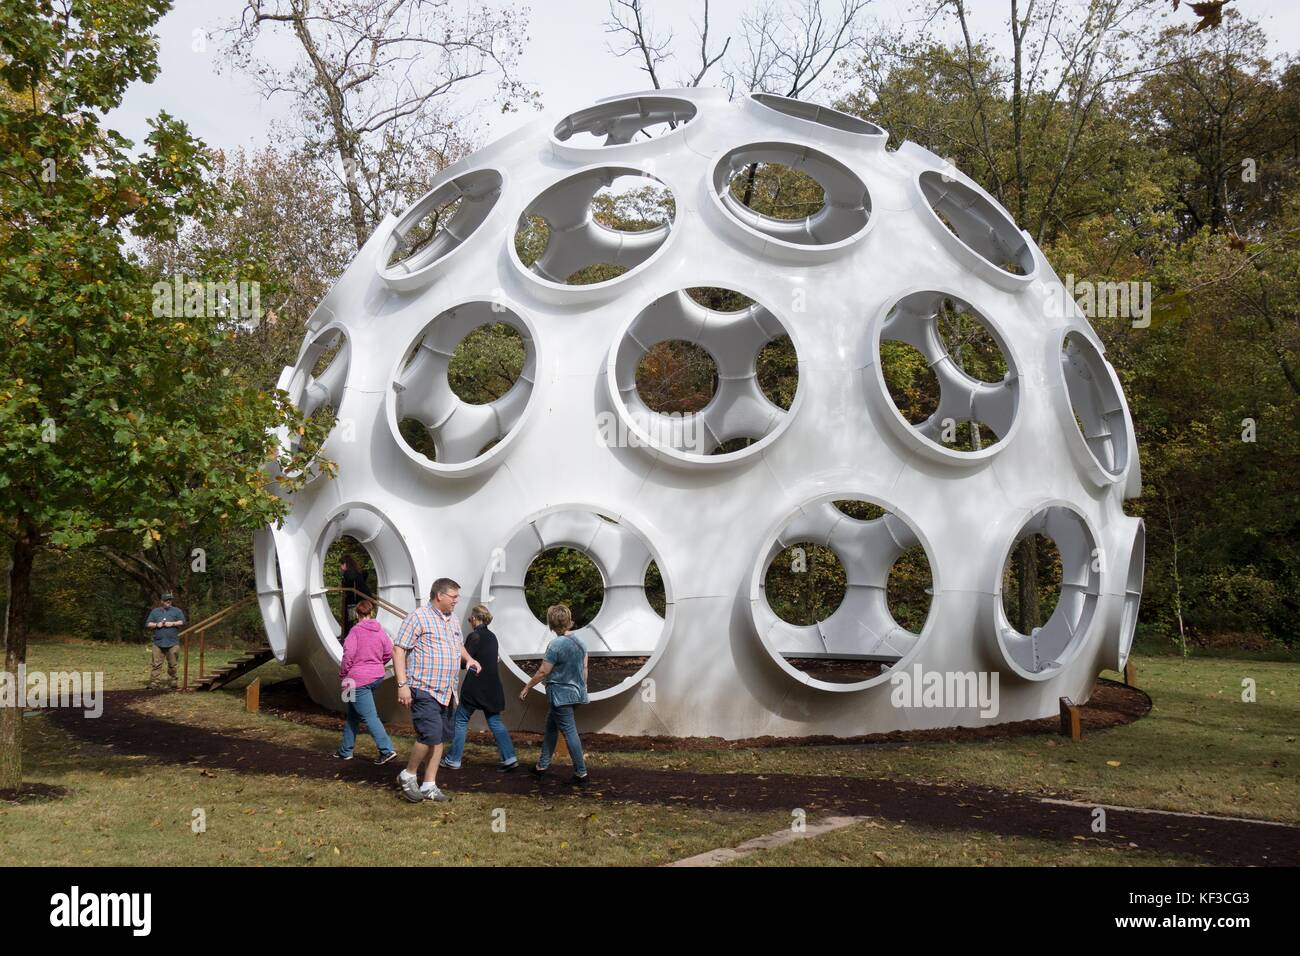 The Fly's Eye Dome, designed by Buckminster Fuller, at Crystal Bridges art museum in Bentonville, Arkansas, - Stock Image